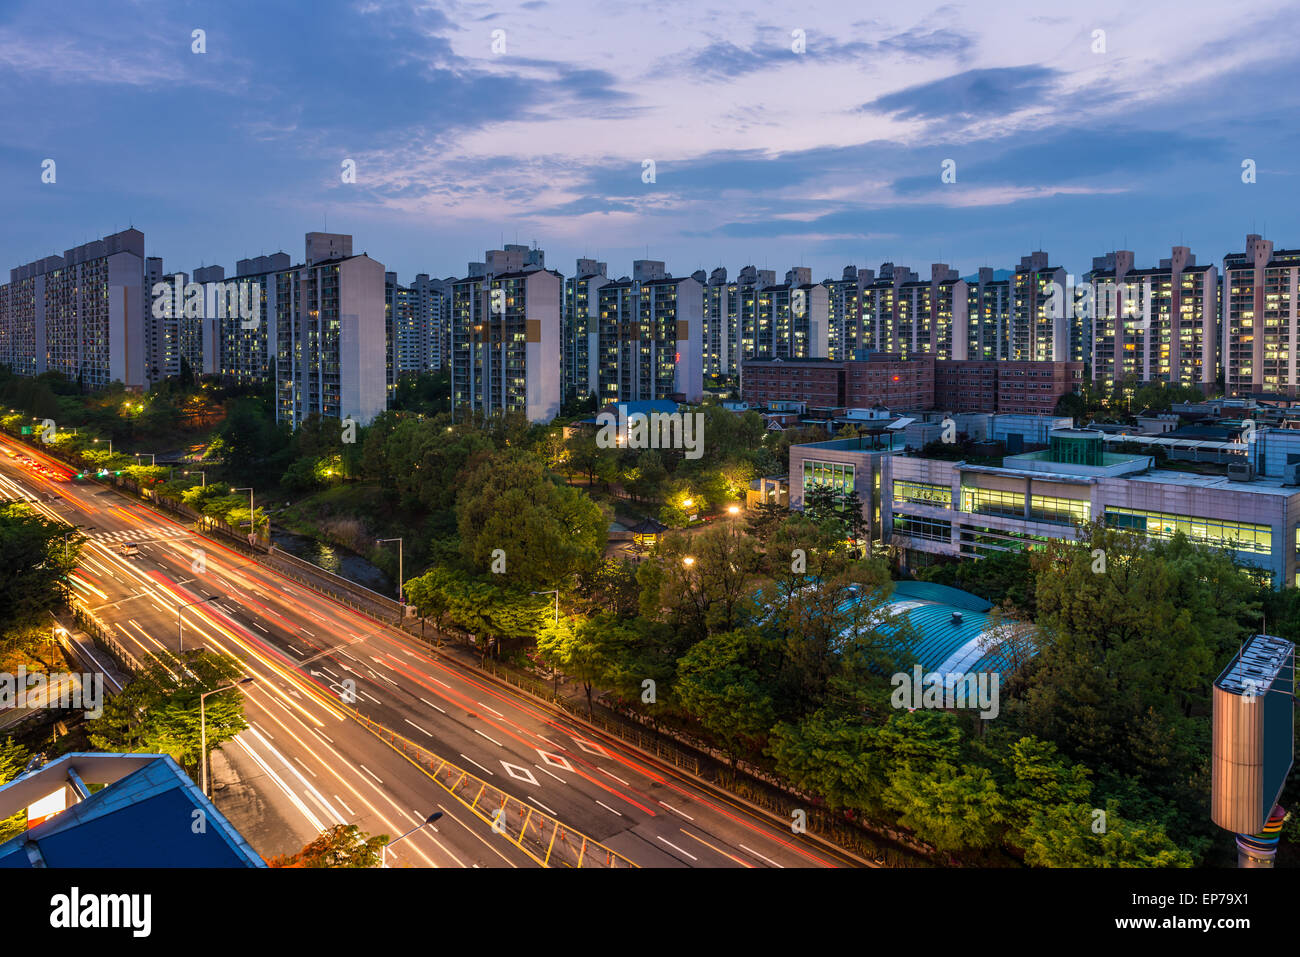 The sun sets over the endless apartment buildings among the suburbs of Seoul, South Korea. - Stock Image